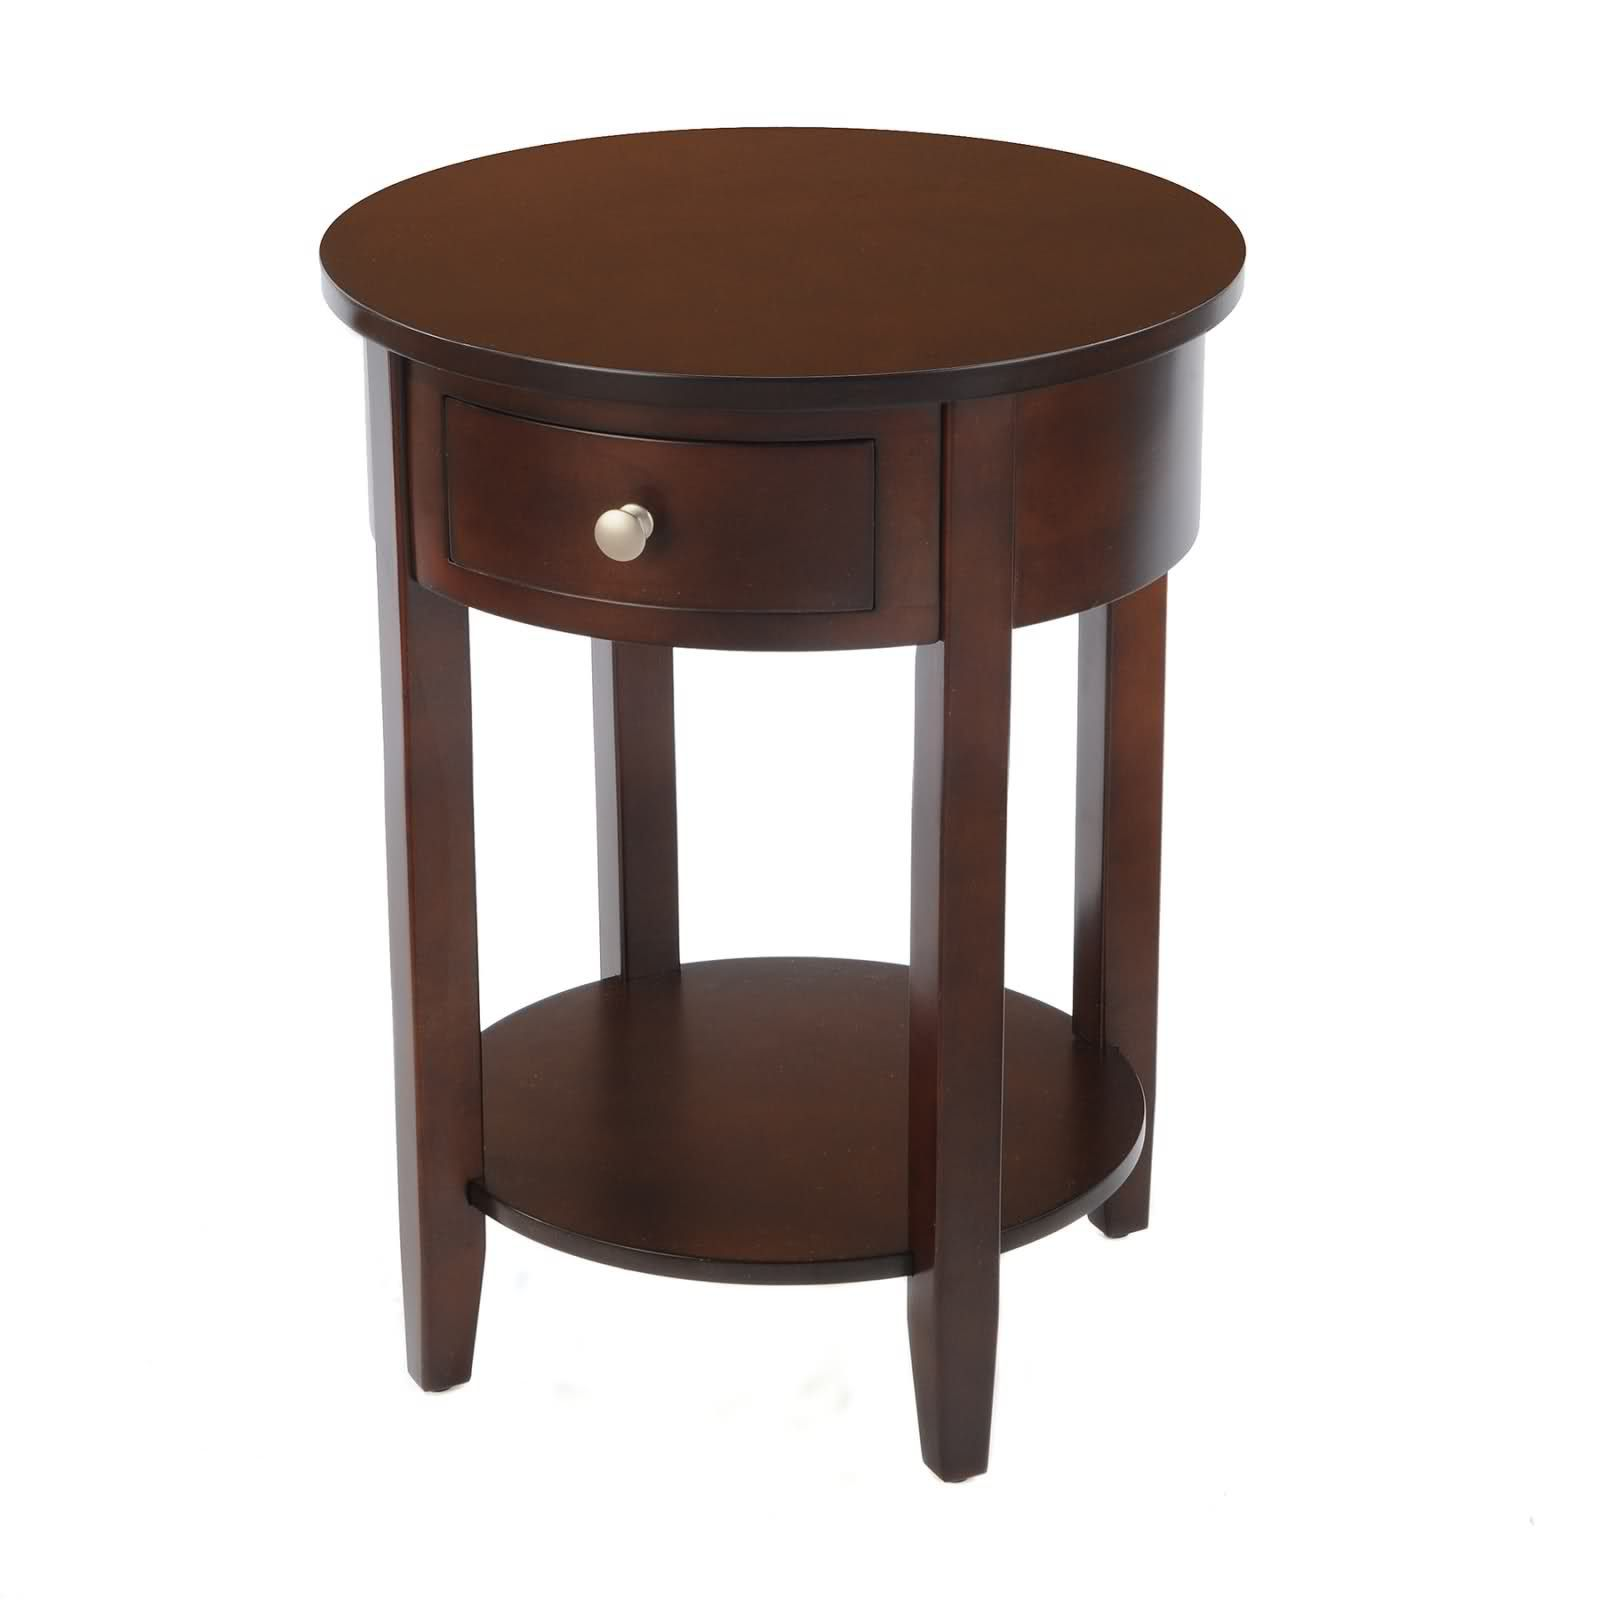 bay shore collection round side table with wood top and drawer spin prod accent tan threshold espresso acrylic nesting coffee oval glass end inch hairpin legs metal frame mahogany